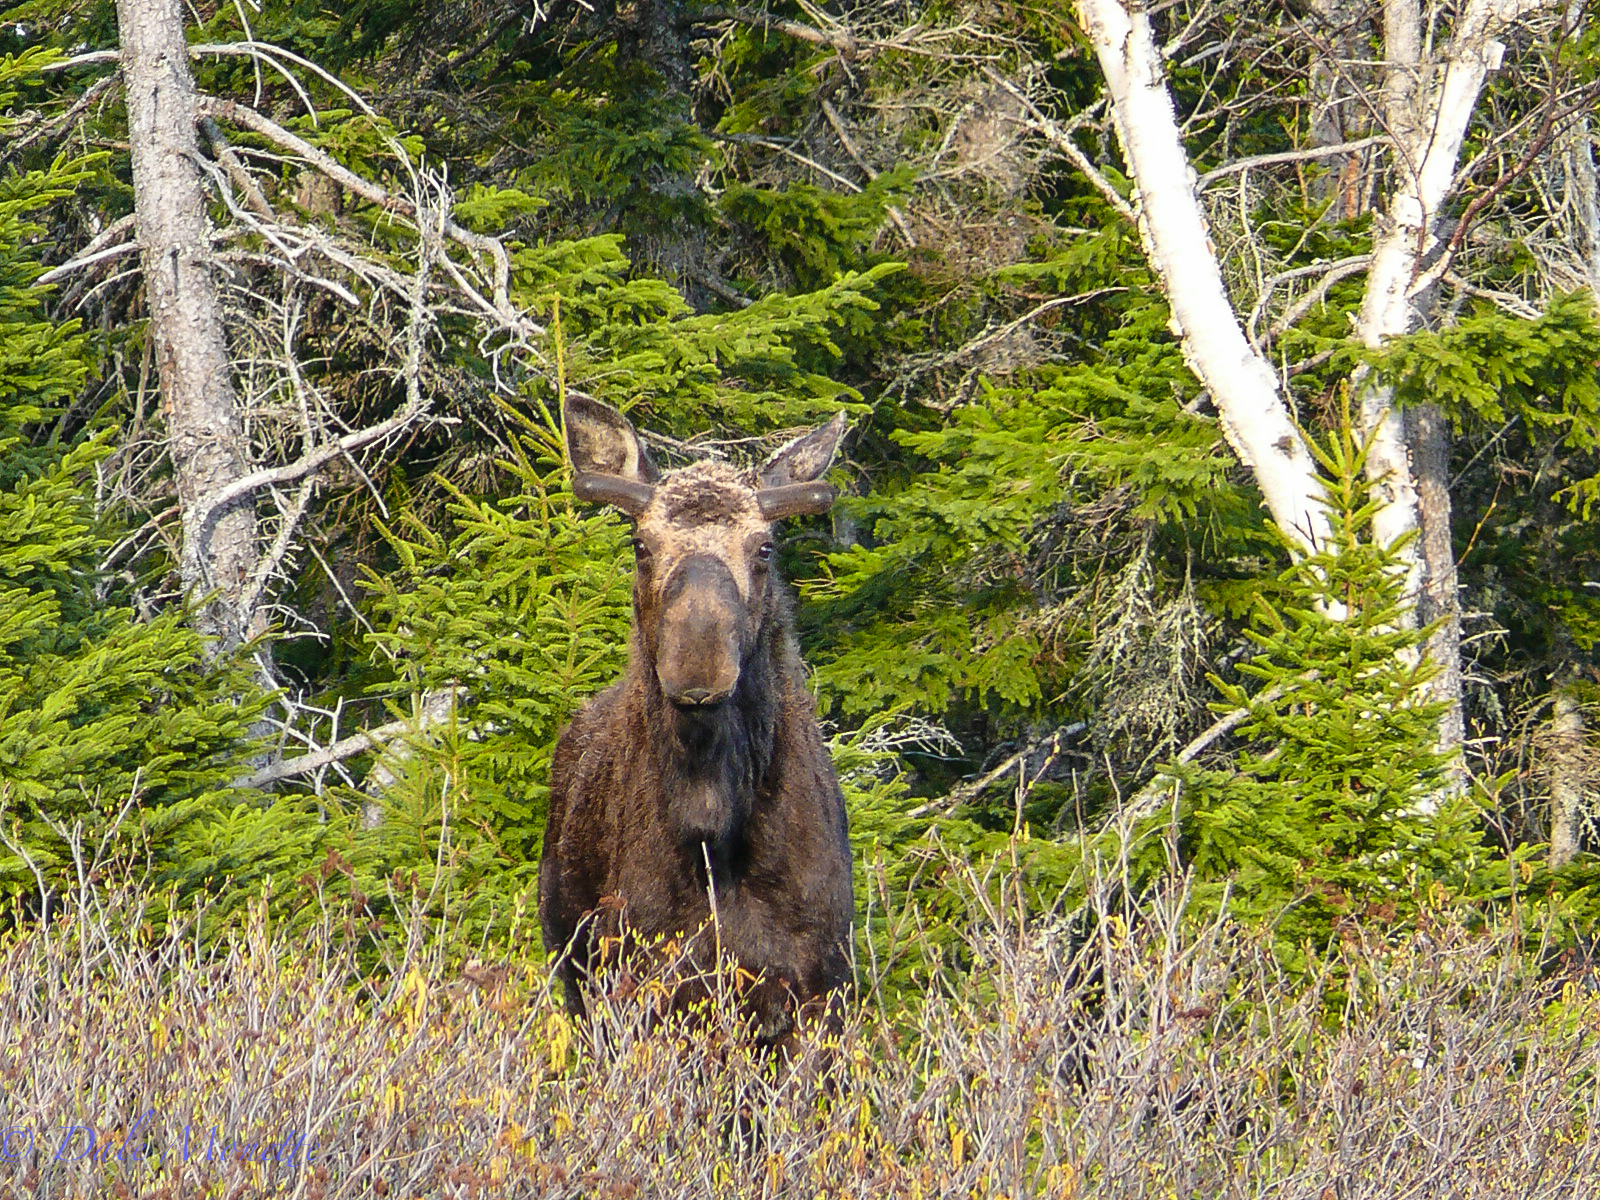 All these moose photos you will see were taken in The Cape Breton Highlands National Park on Cape Breton Island, Nova Scotia, Canada Enjoy them as I had a blast photographing them.